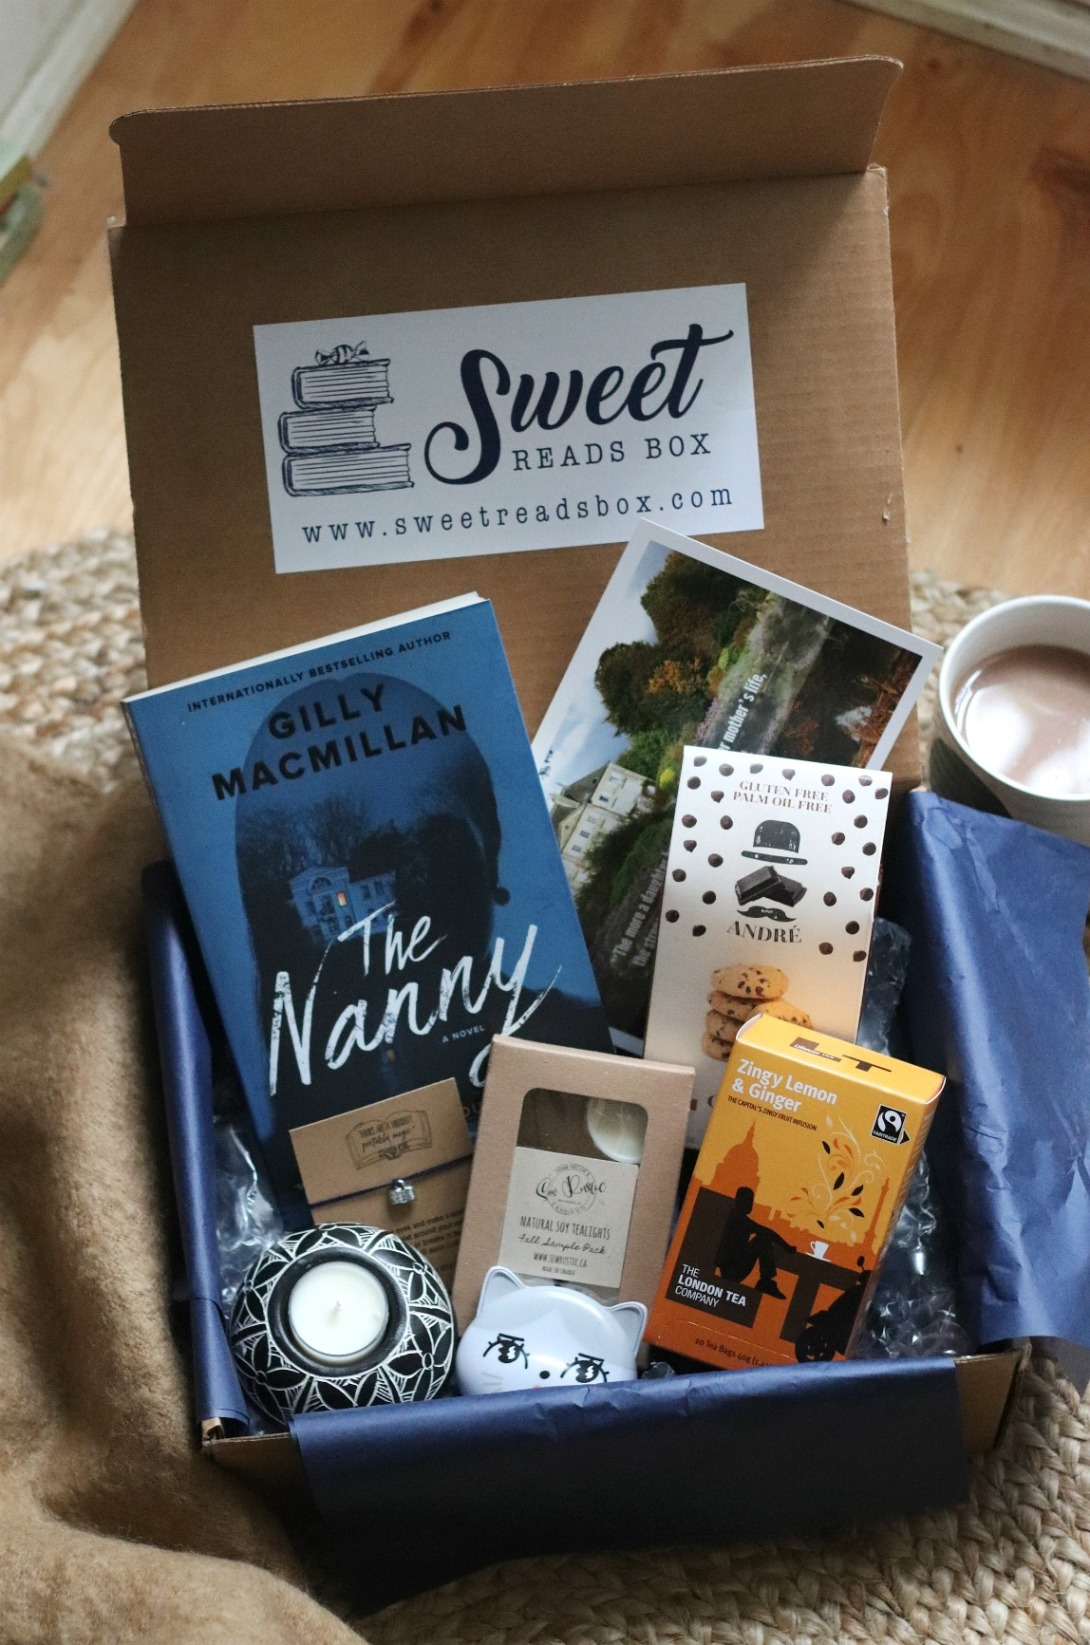 Sweet Reads Box October 2019 full contents